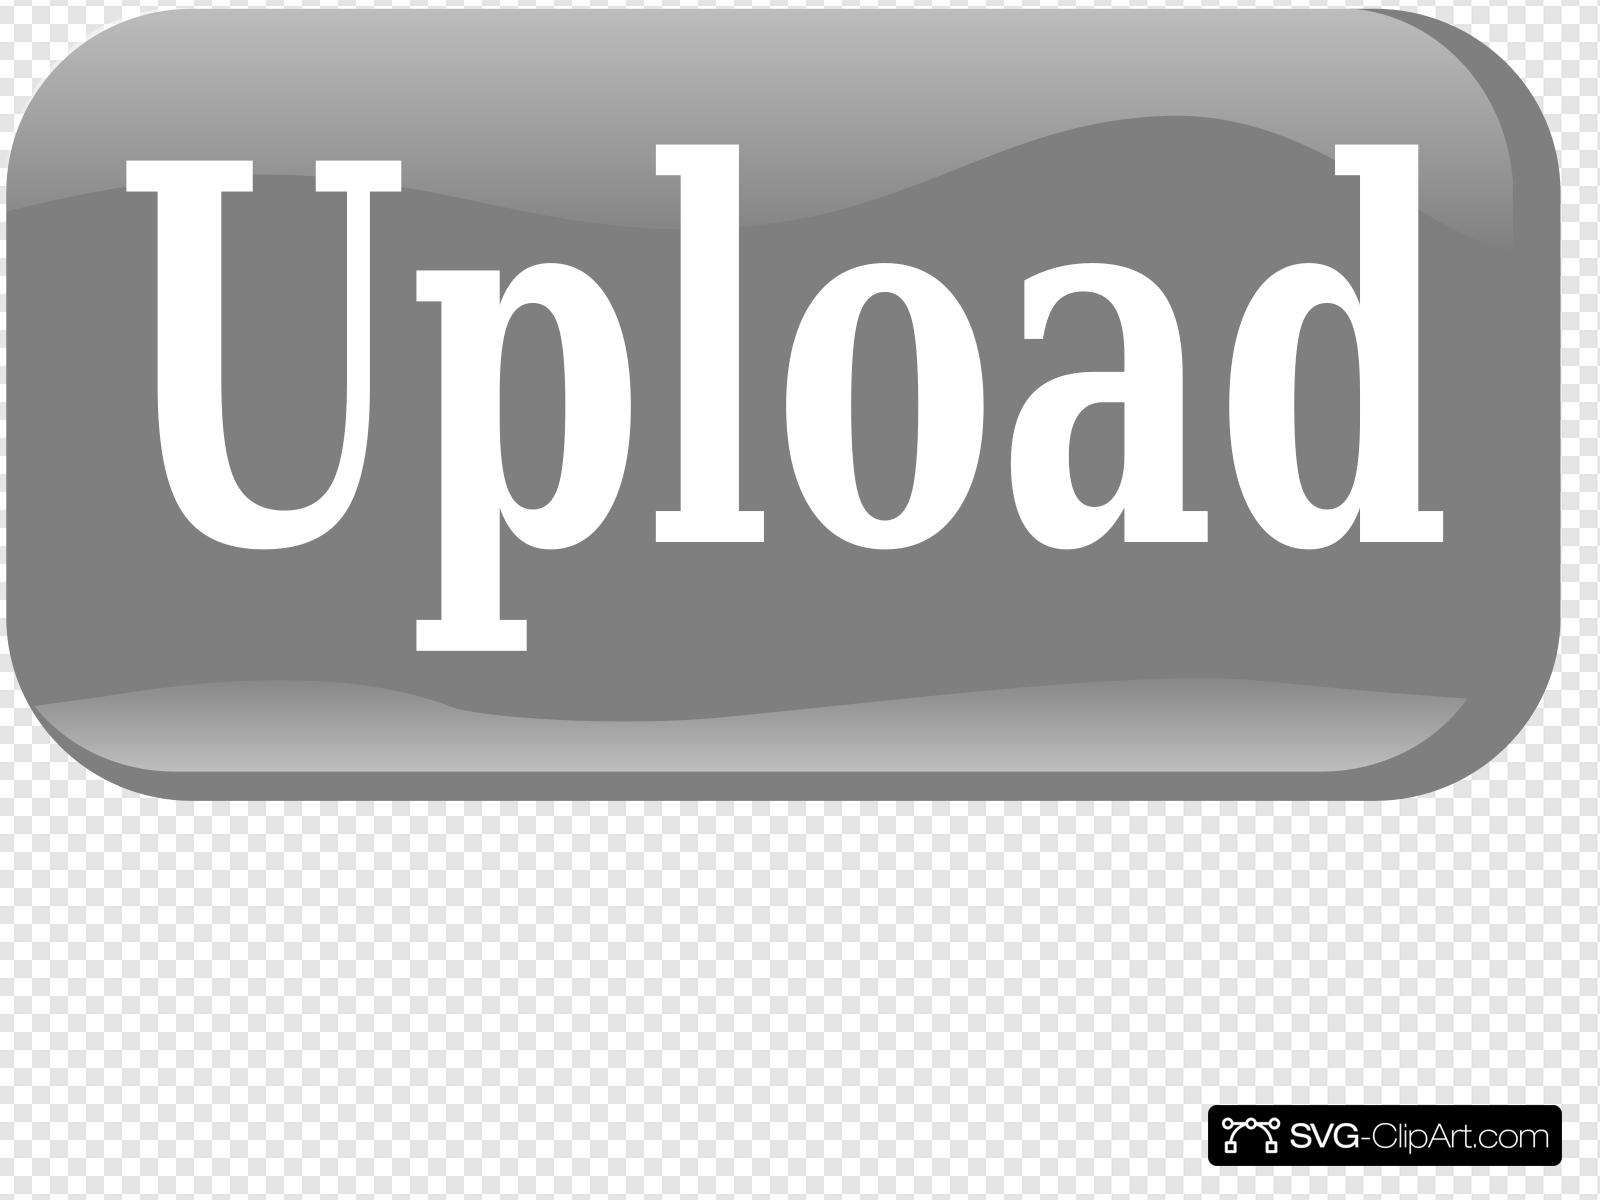 Upload Button Clip art, Icon and SVG.